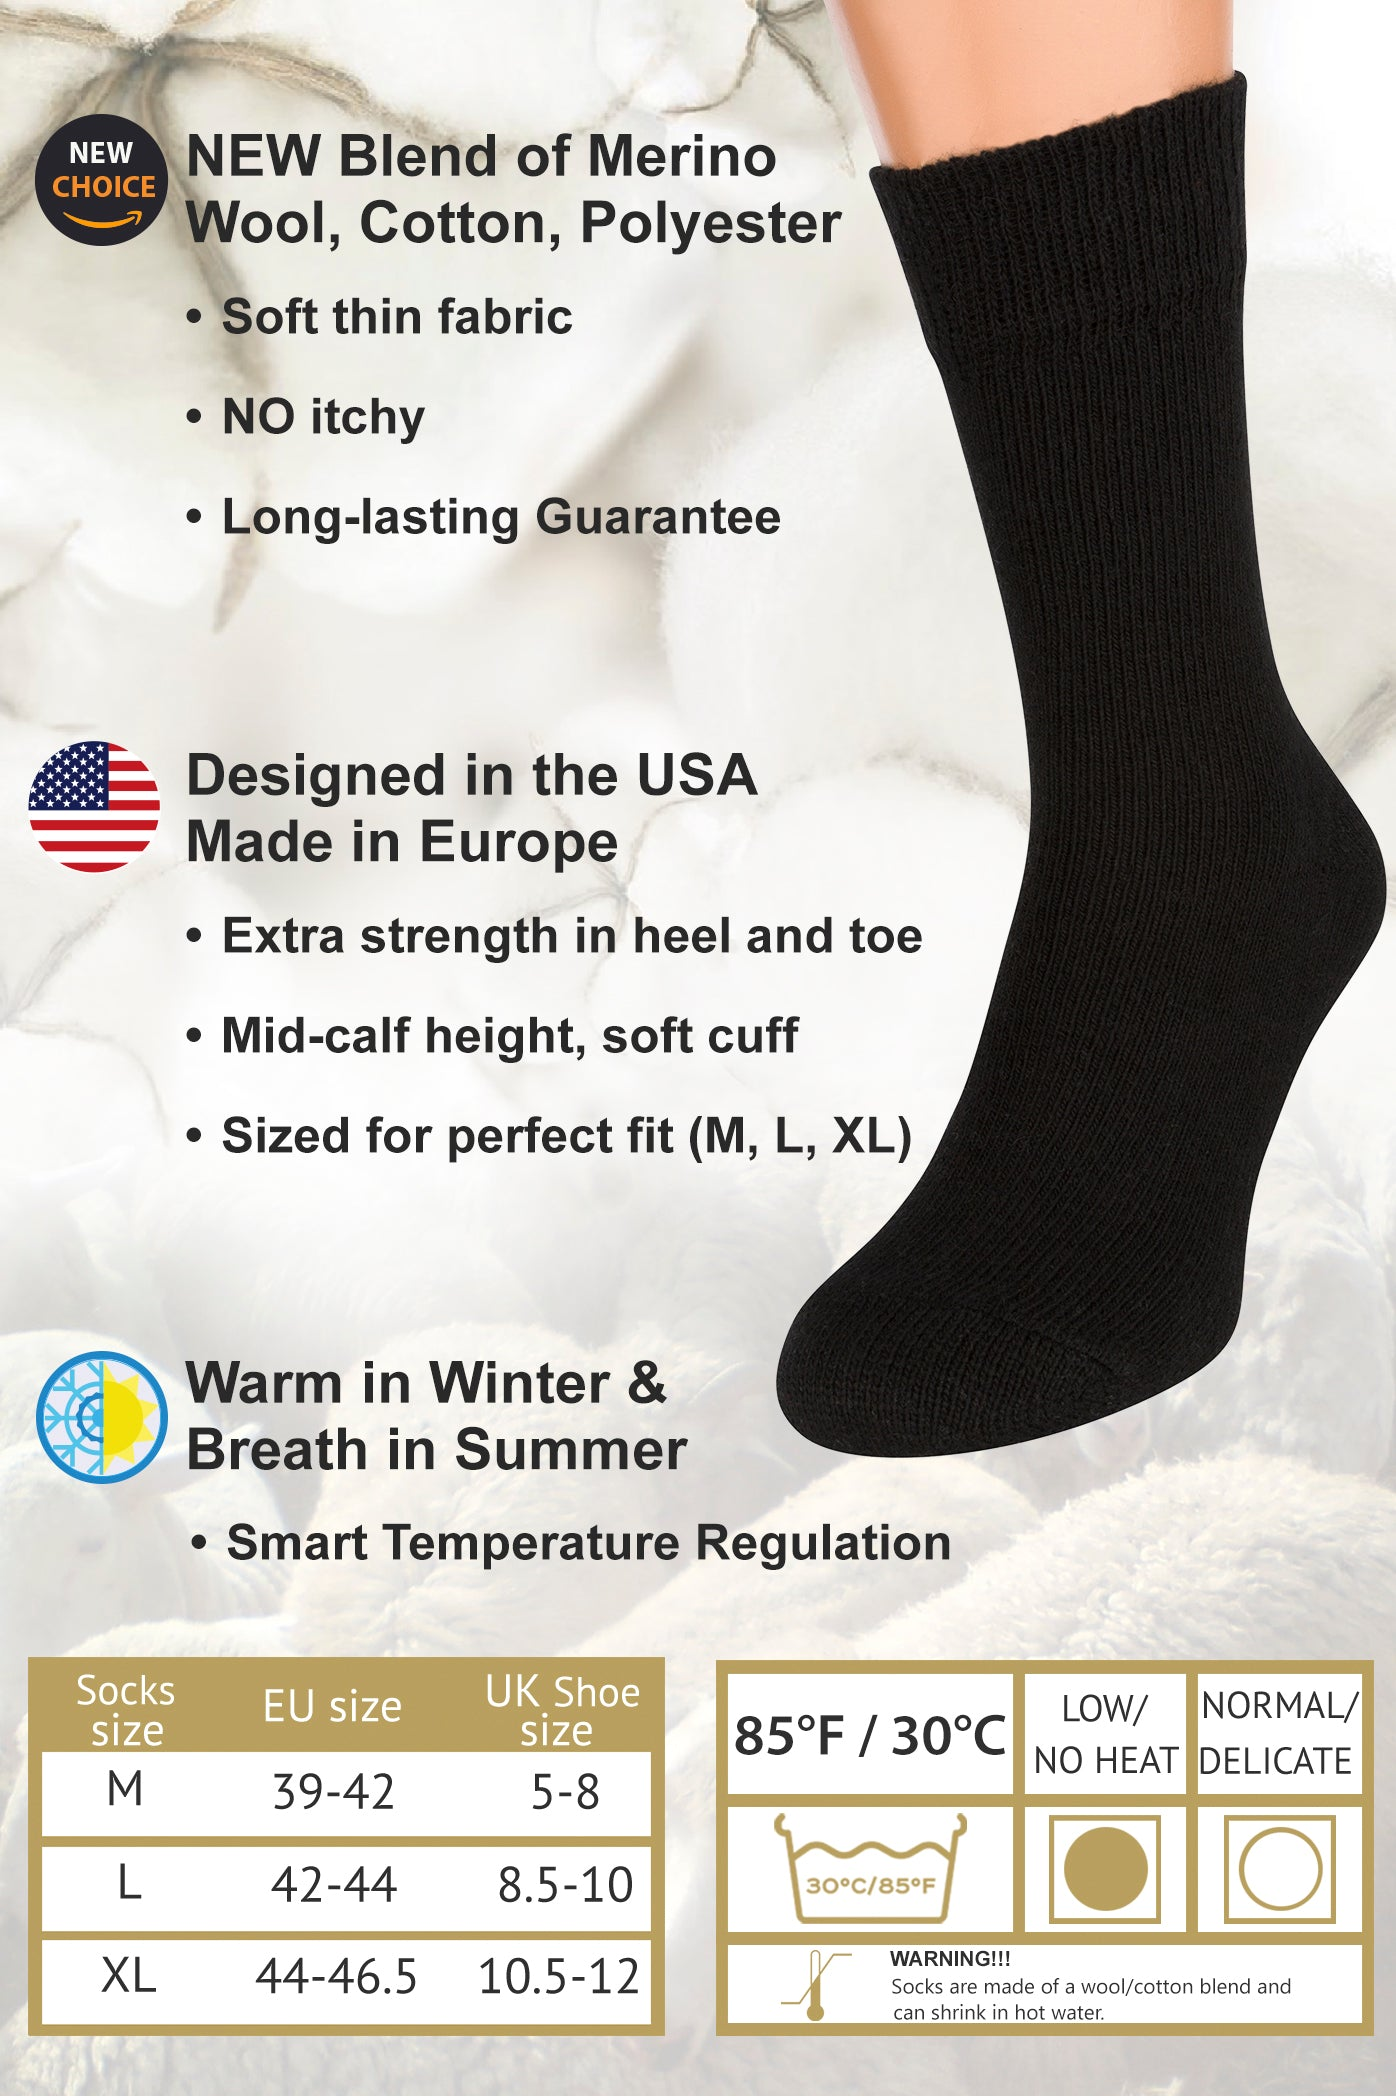 Air Wool Socks, Merino Wool Cotton Thermal Heated Yarn Dress Socks, 2 pair (Black)